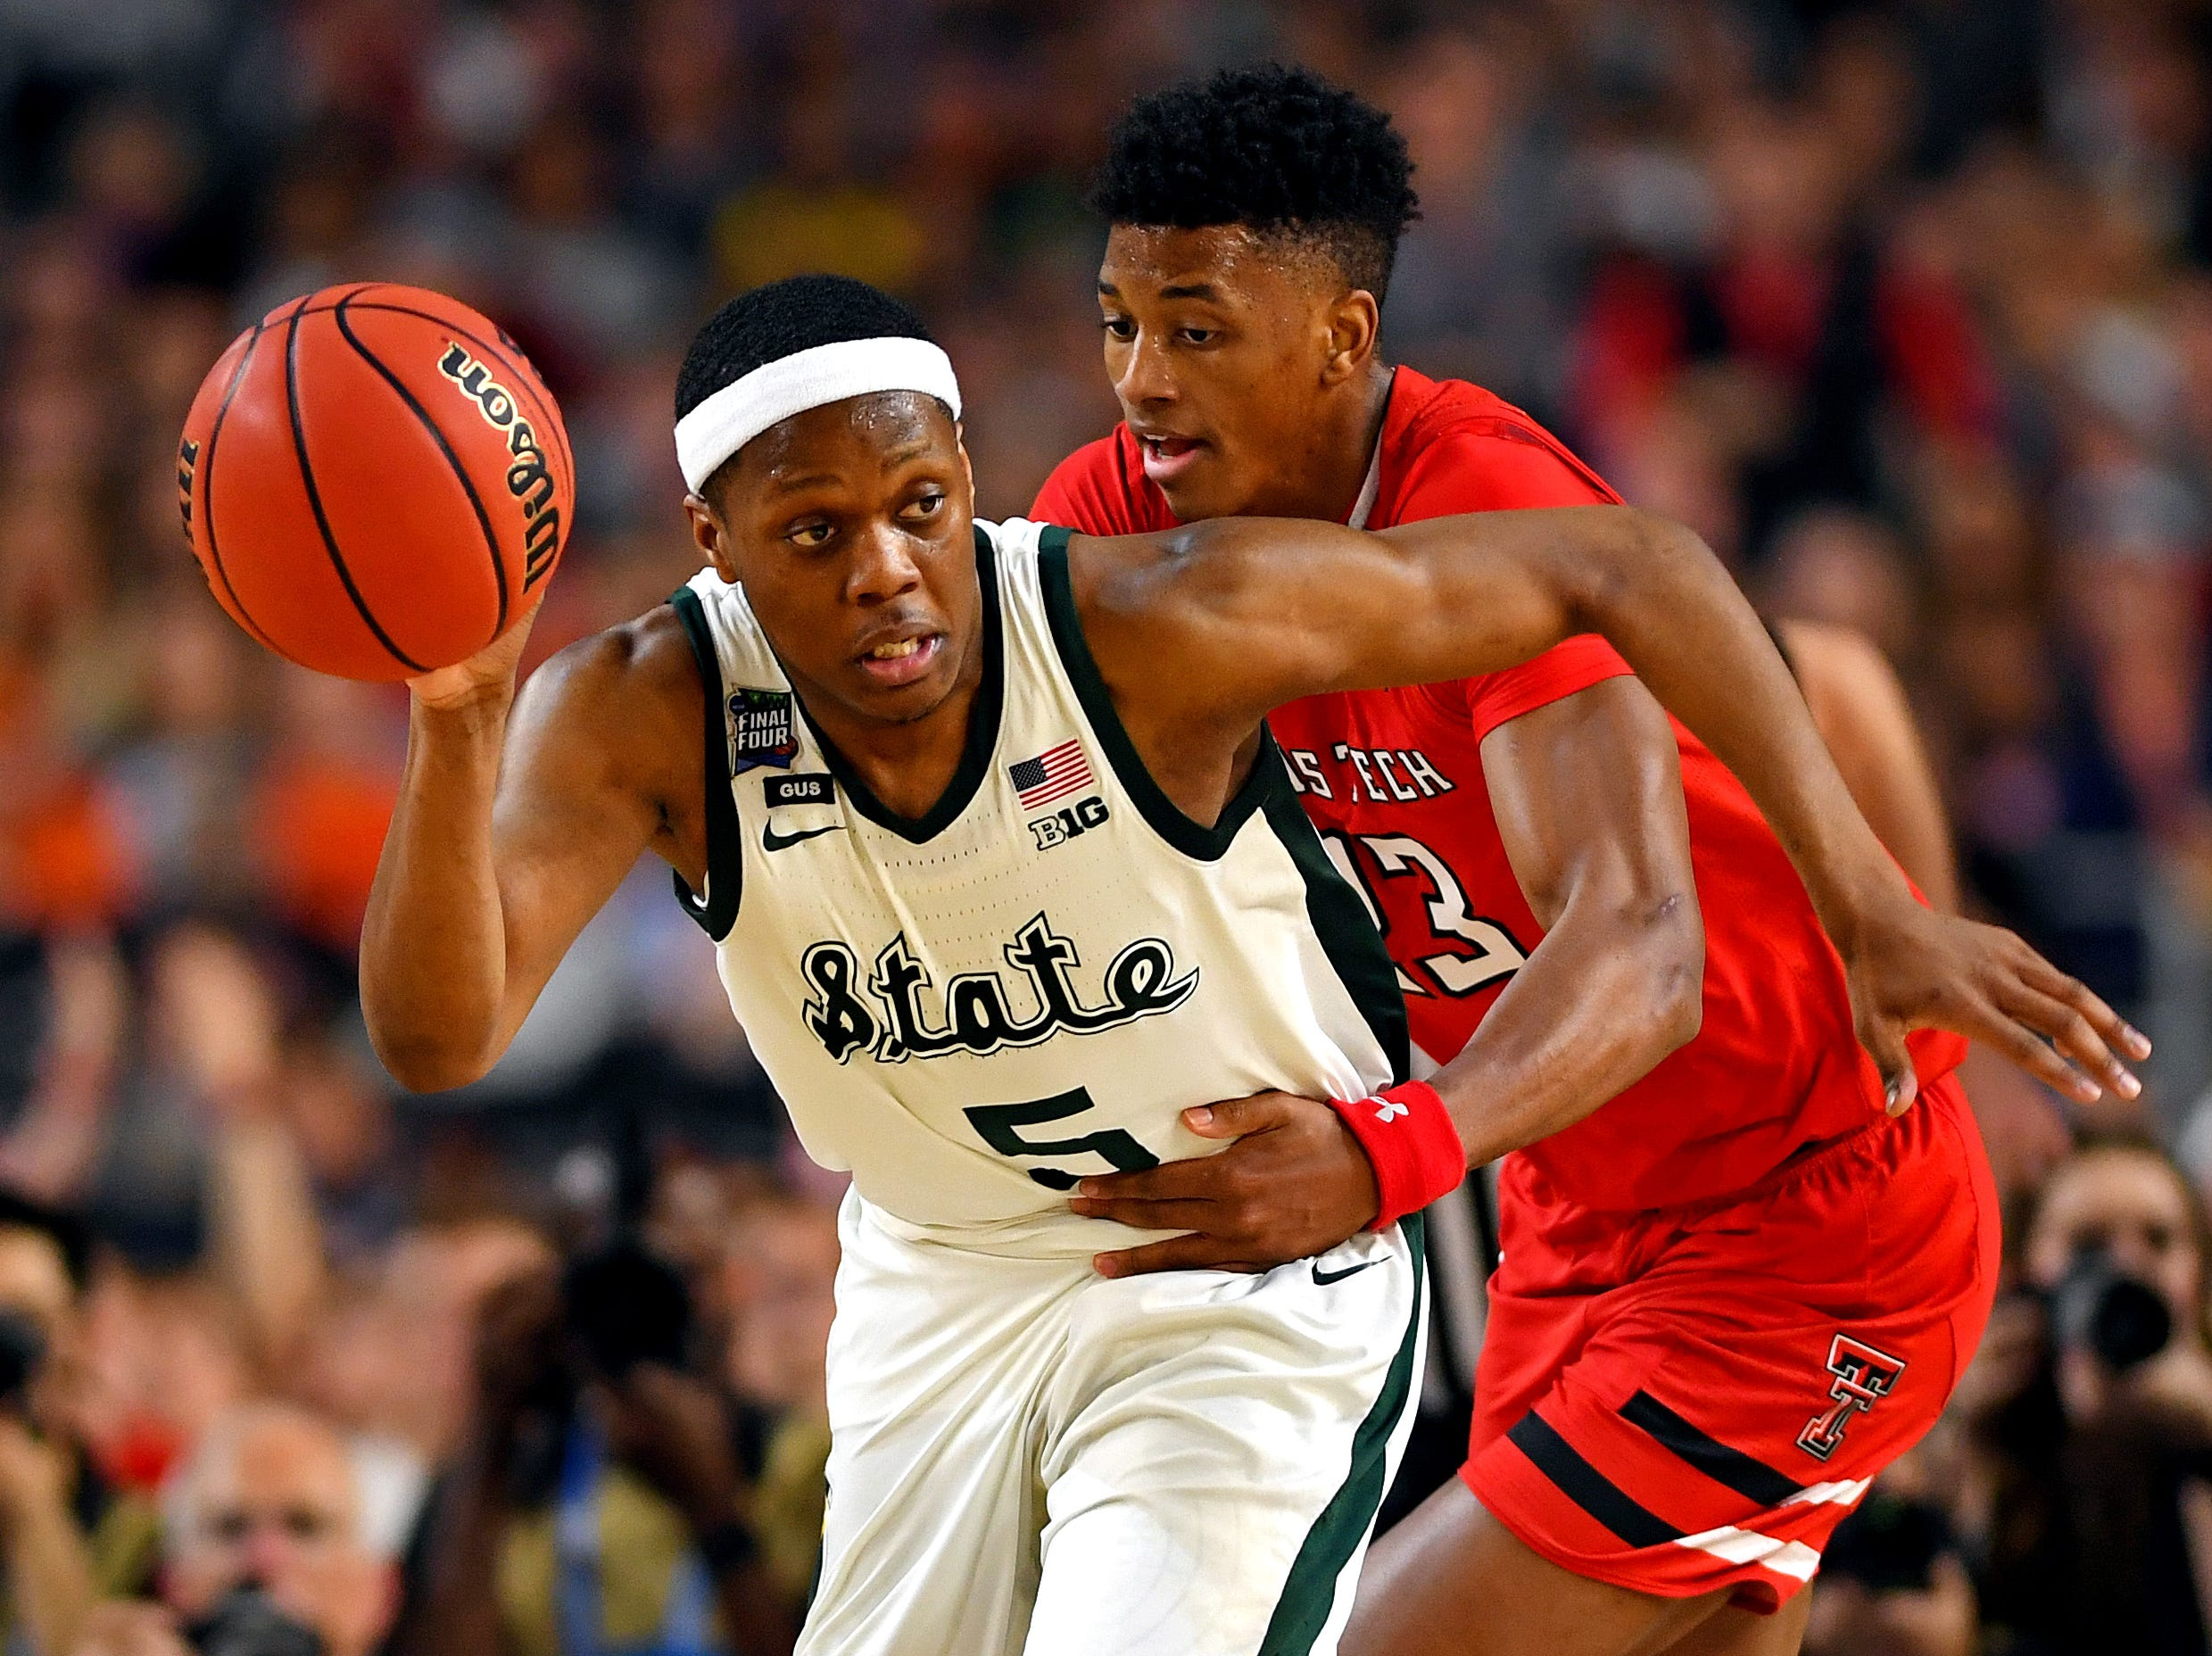 Apr 6, 2019; Minneapolis, MN, USA; Michigan State Spartans guard Cassius Winston (5) brings the ball up court against Texas Tech Red Raiders guard Jarrett Culver (23) during the second half in the semifinals of the 2019 men's Final Four at US Bank Stadium. Mandatory Credit: Bob Donnan-USA TODAY Sports